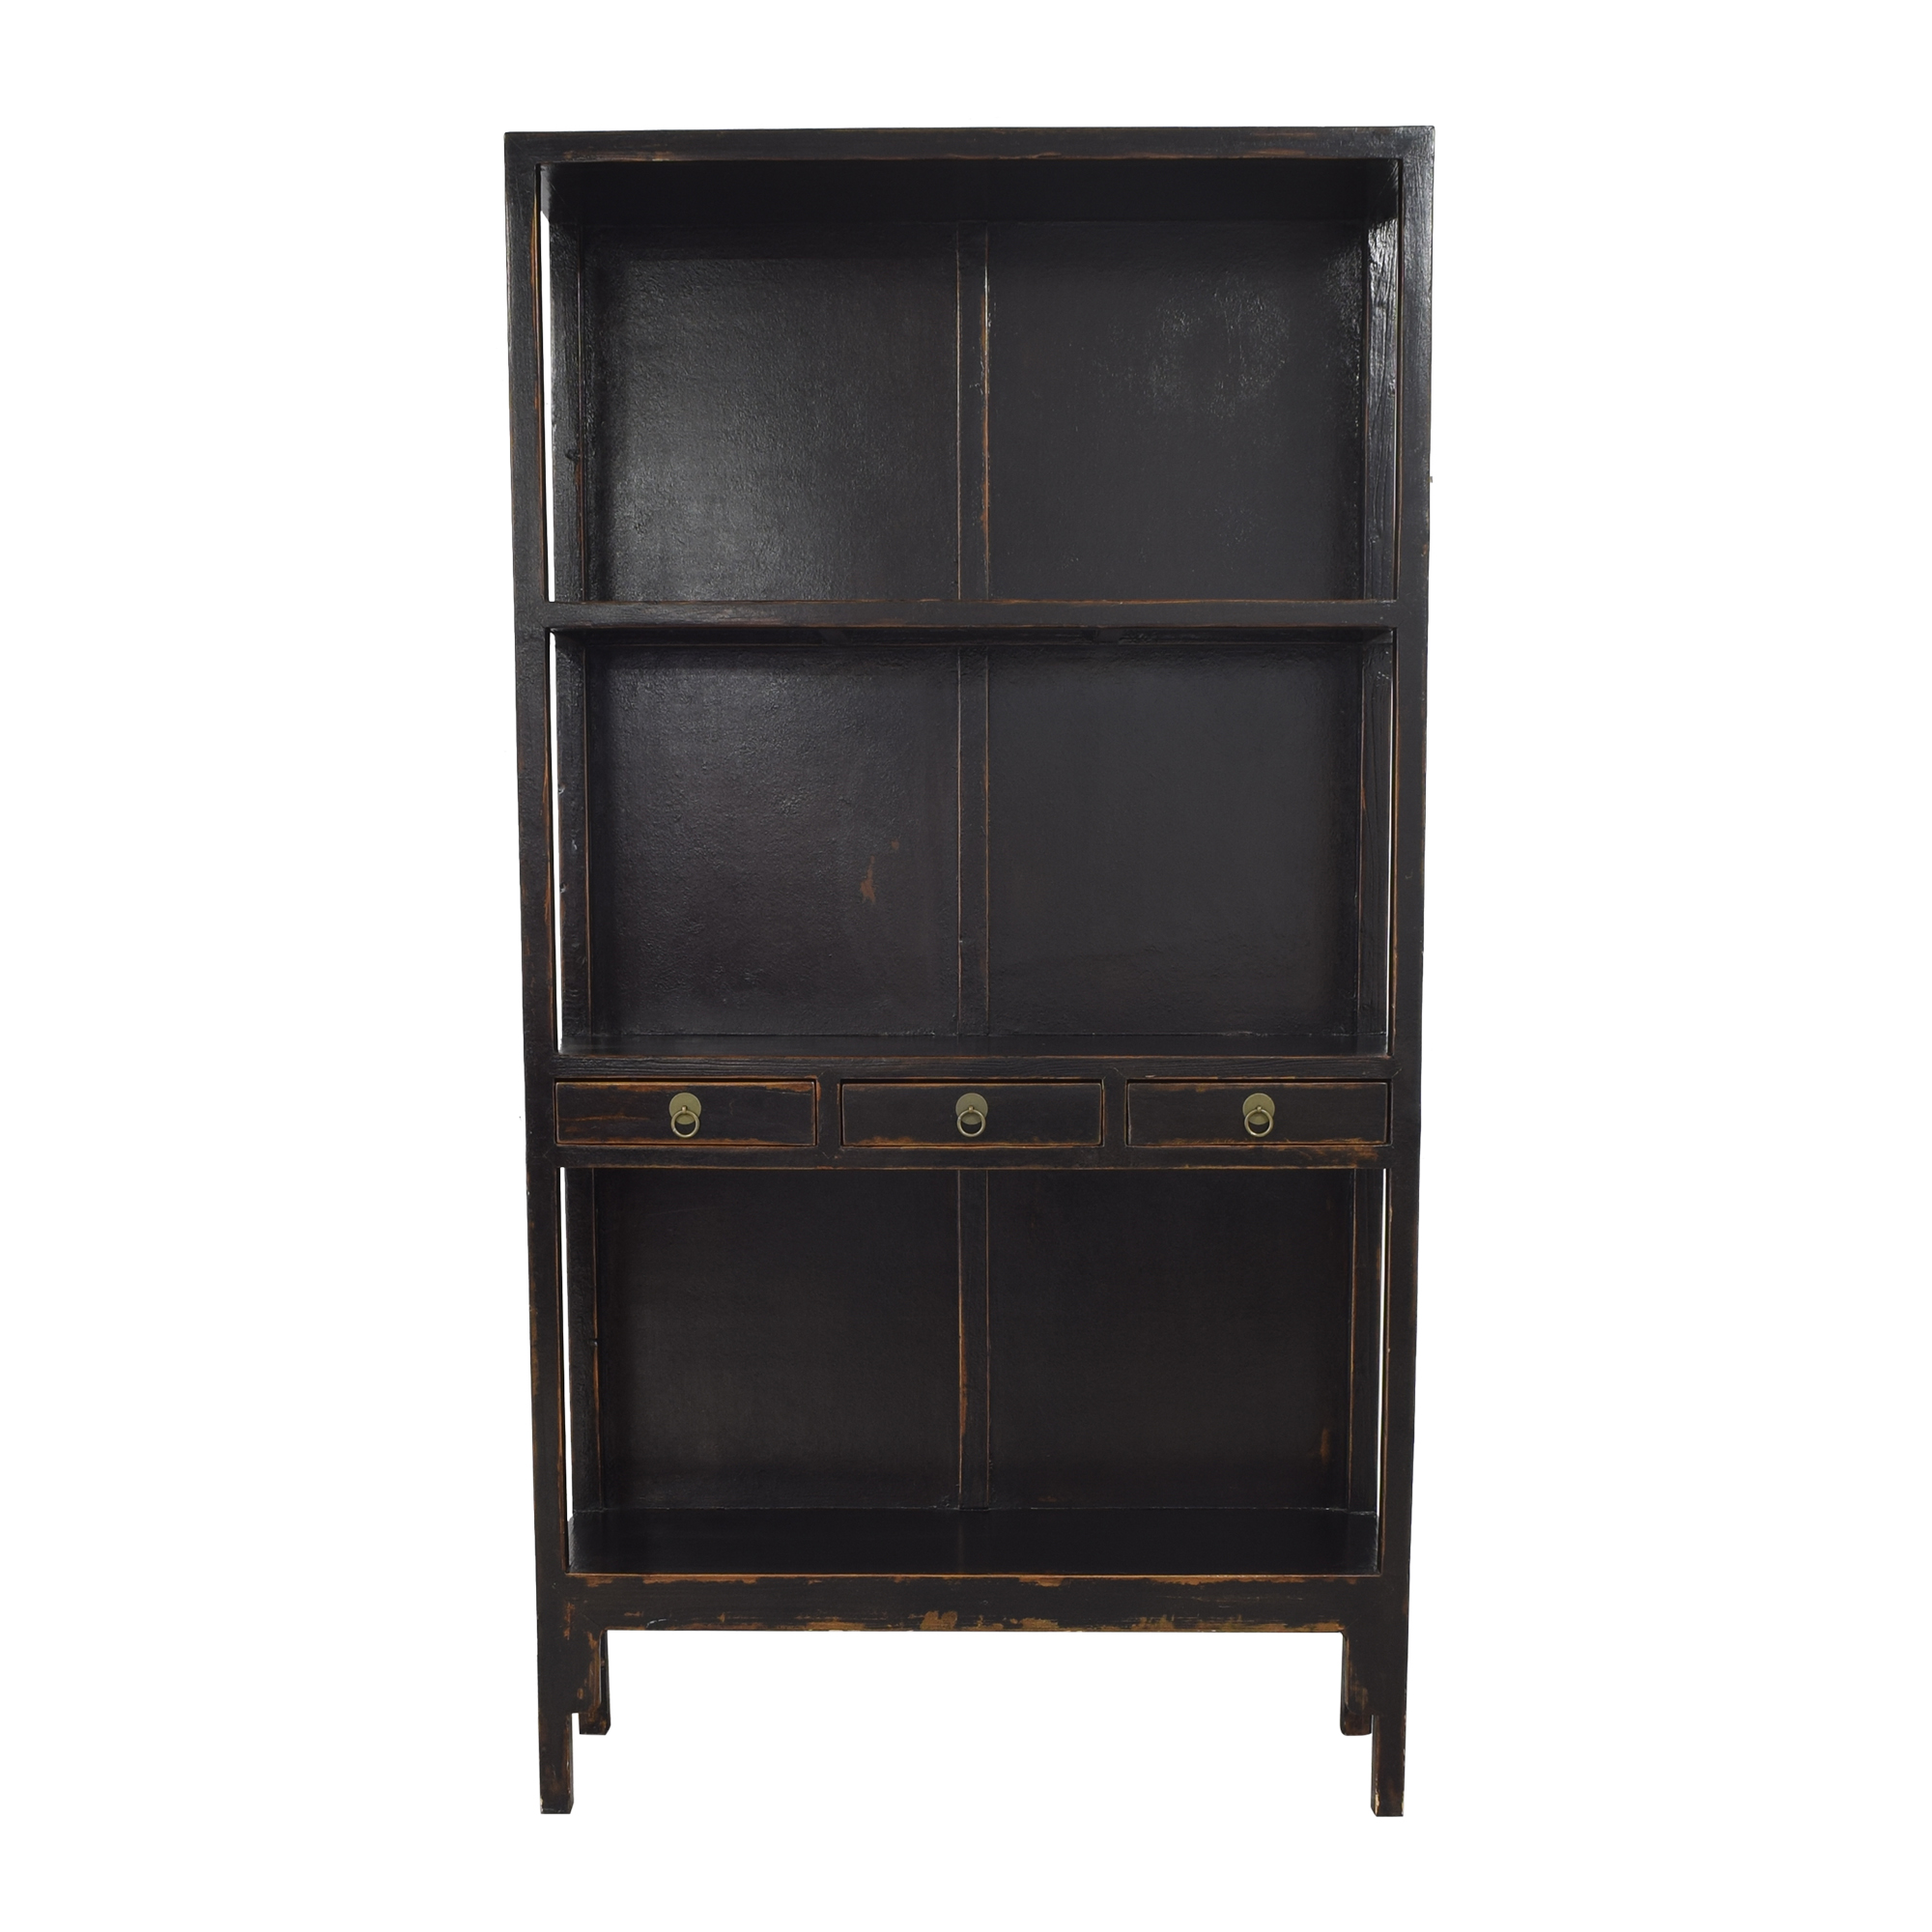 Lillian August Lillian August Chinoiserie Curio Cabinet nyc